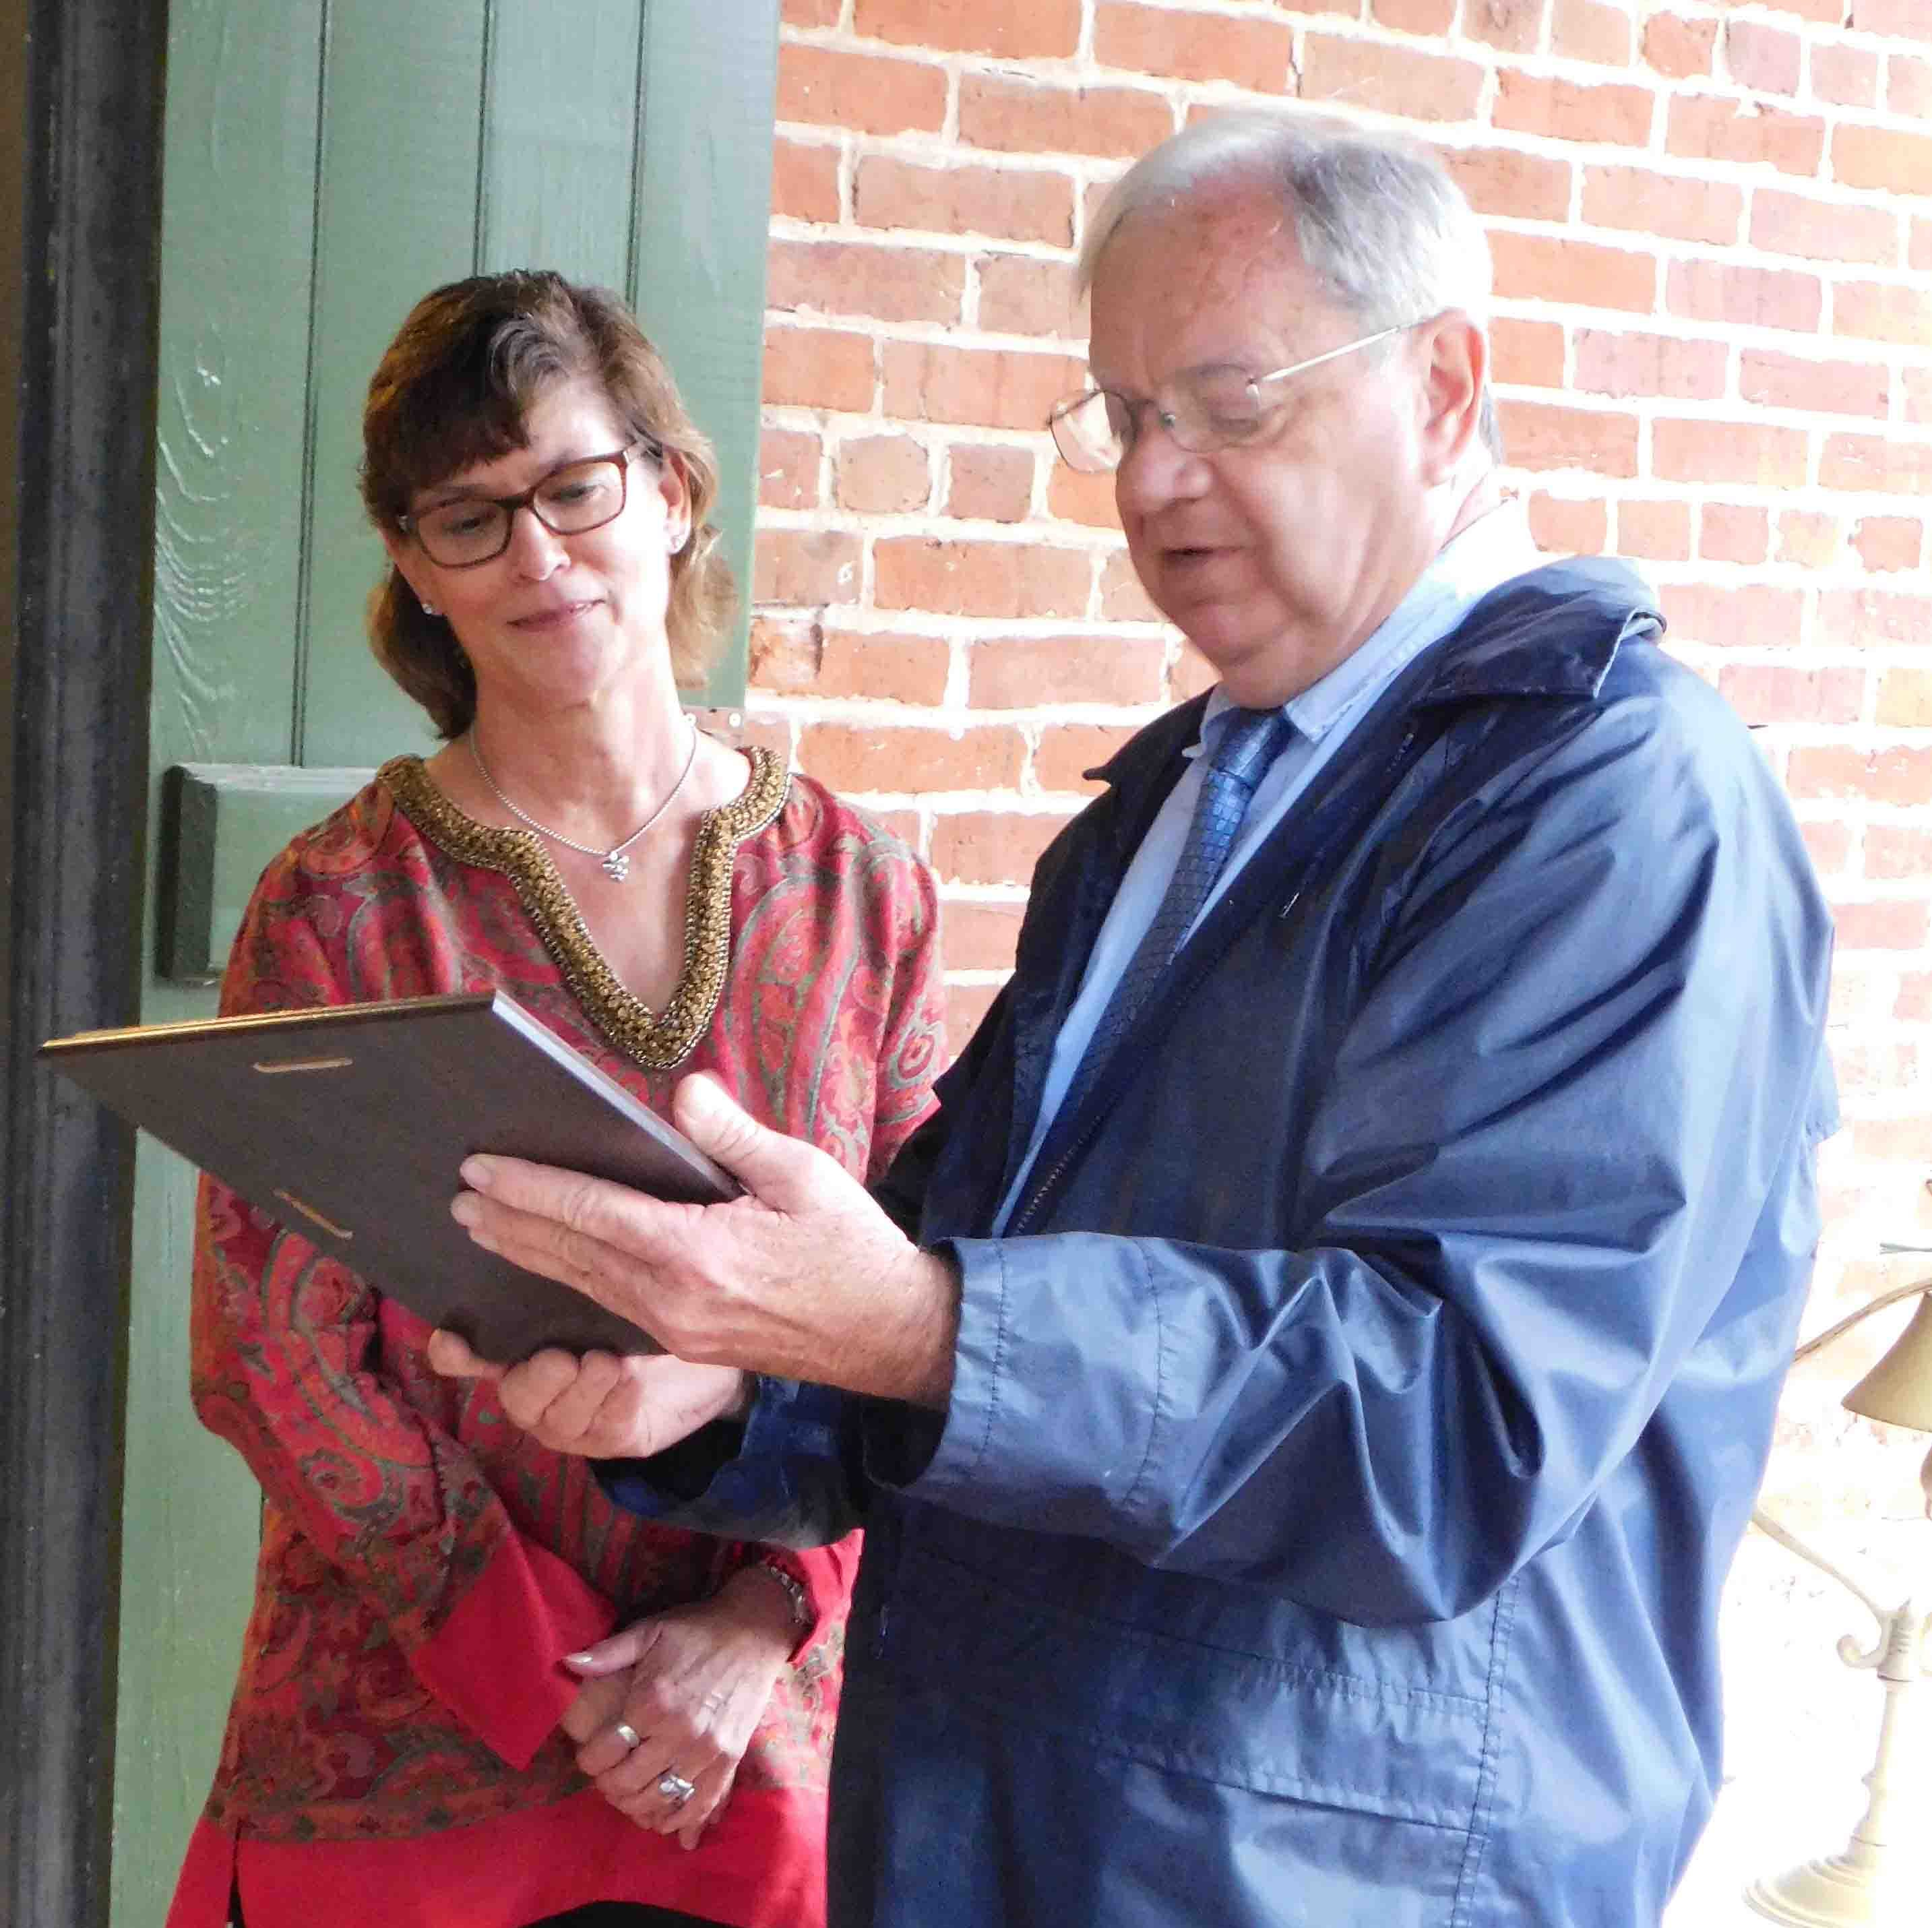 Couple wins annual Preservationist award for Wren House restoration